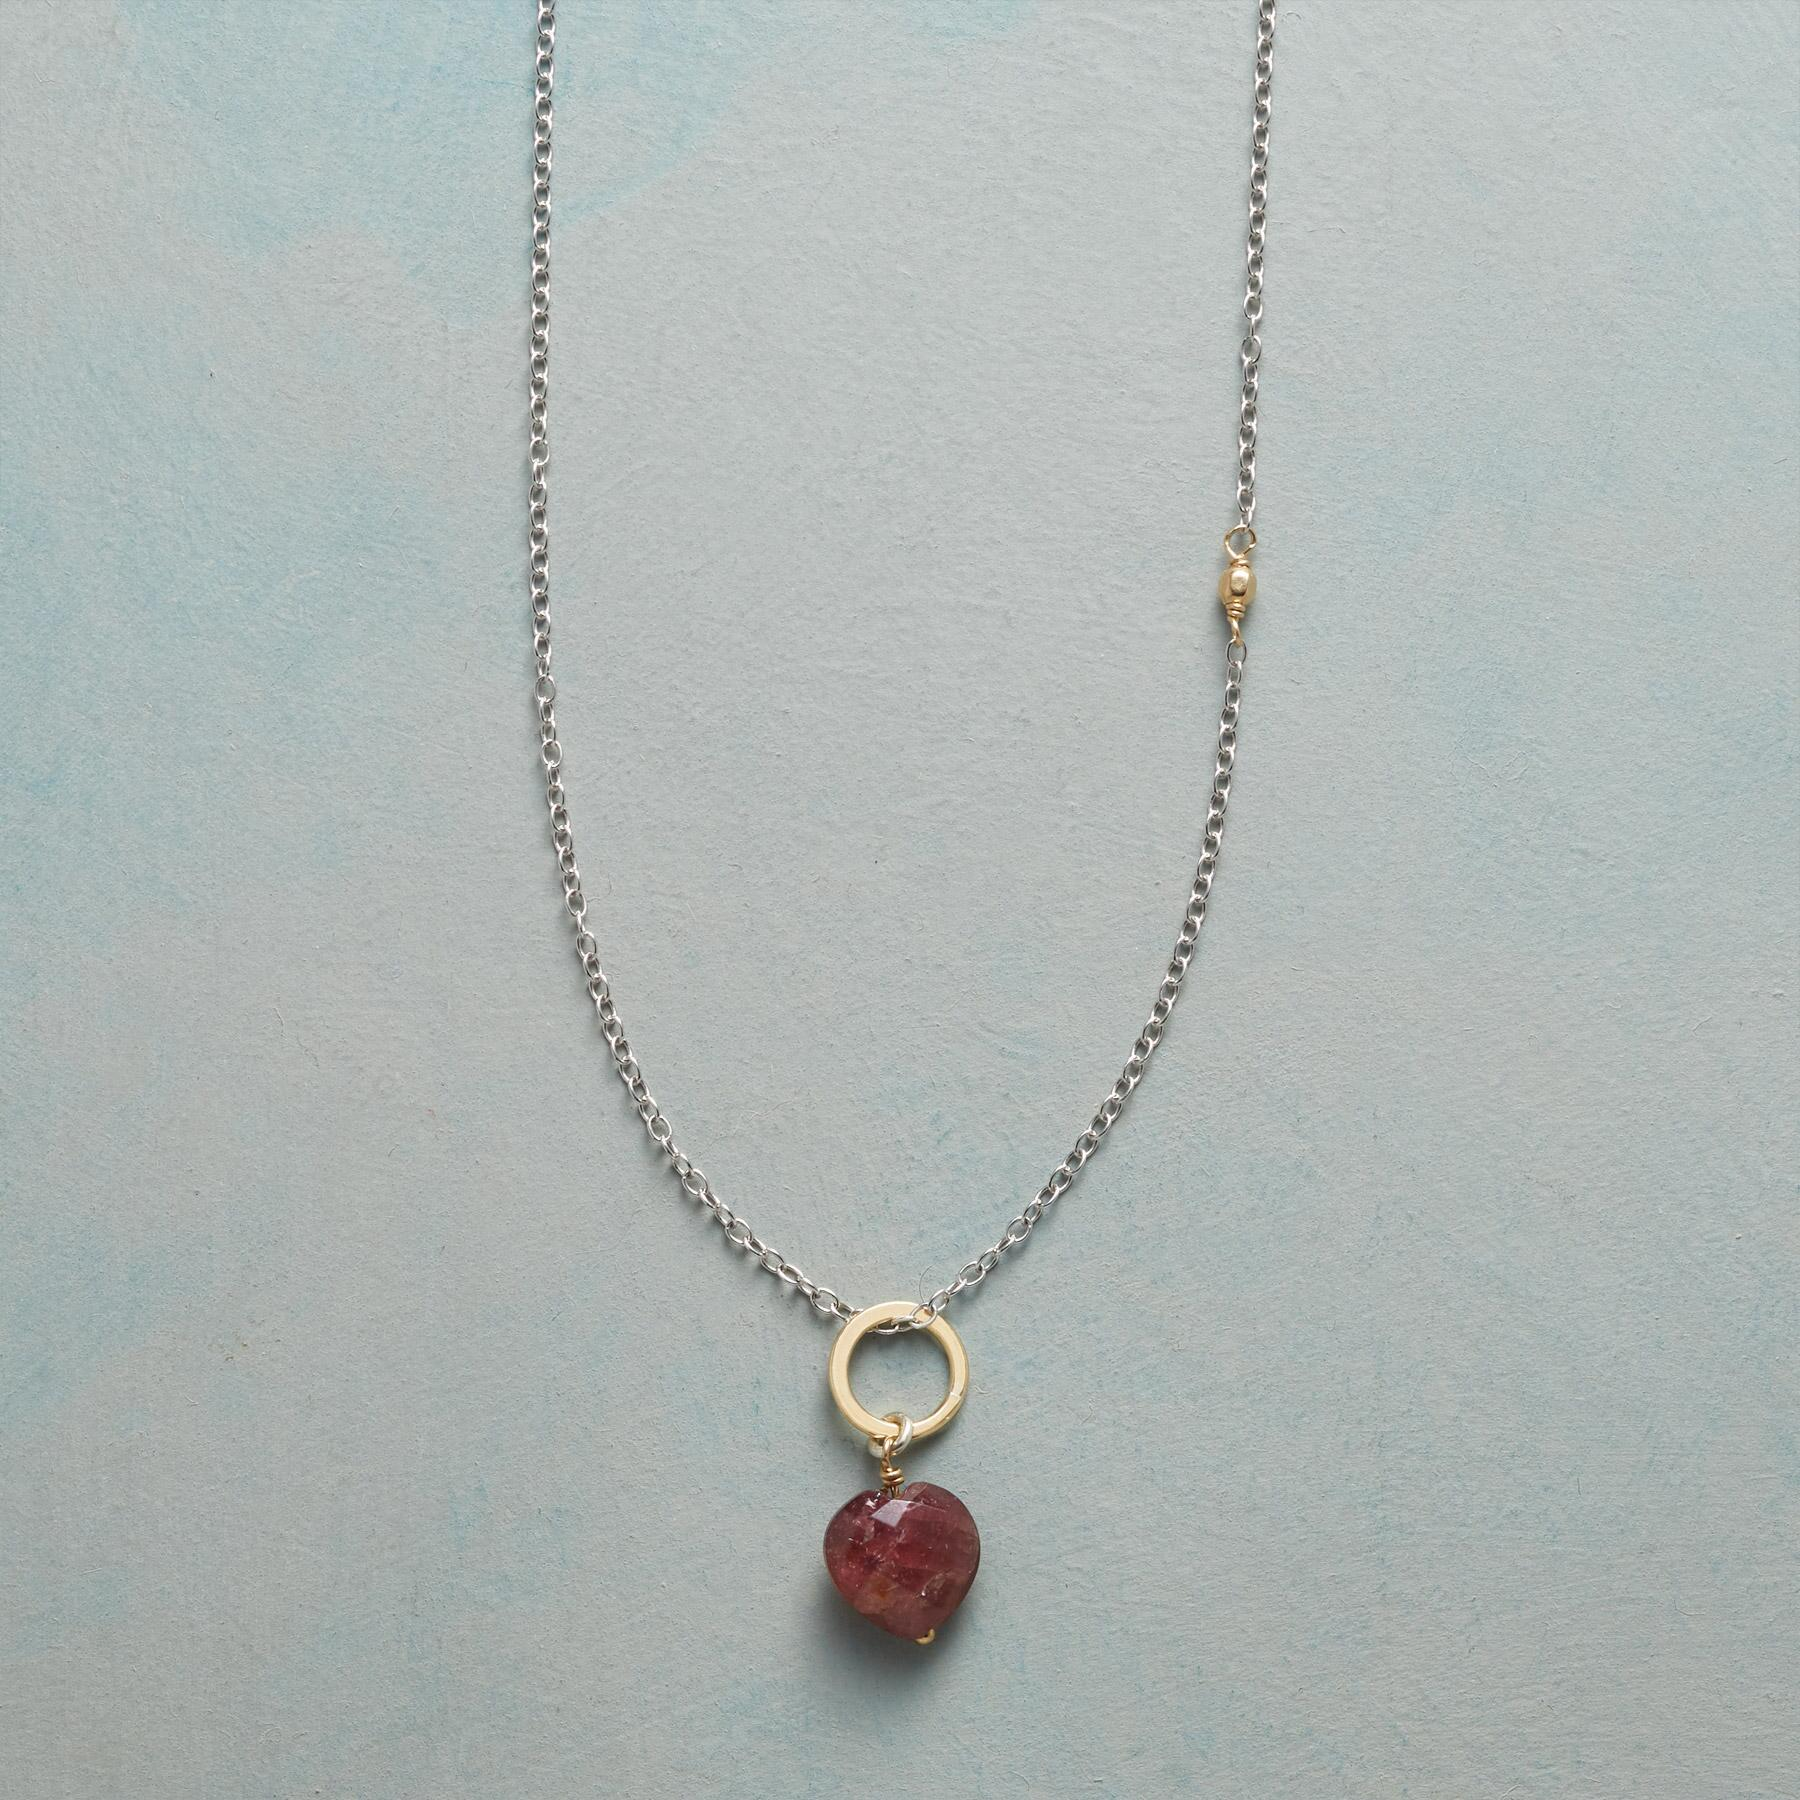 FAITHFUL HEART BIRTHSTONE NECKLACE: View 1